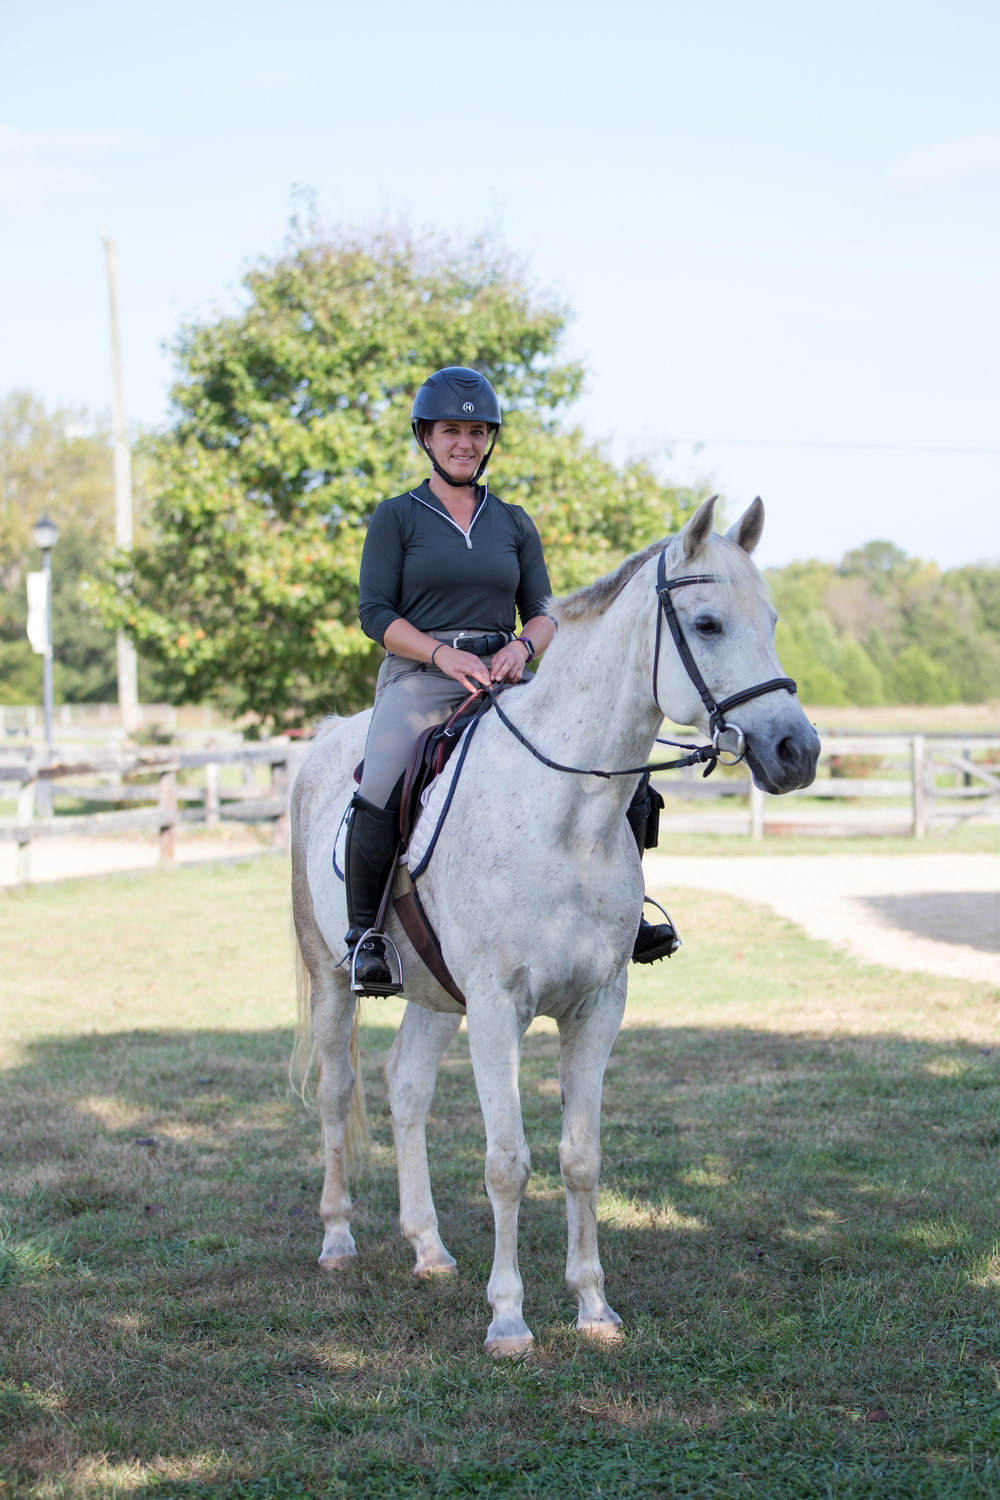 """I cannot say enough good things about Robbie's level of horsemanship and how he has helped me develop as a rider and a trainer! Big thanks to you, Robbie!"" - - Michele Parrish"